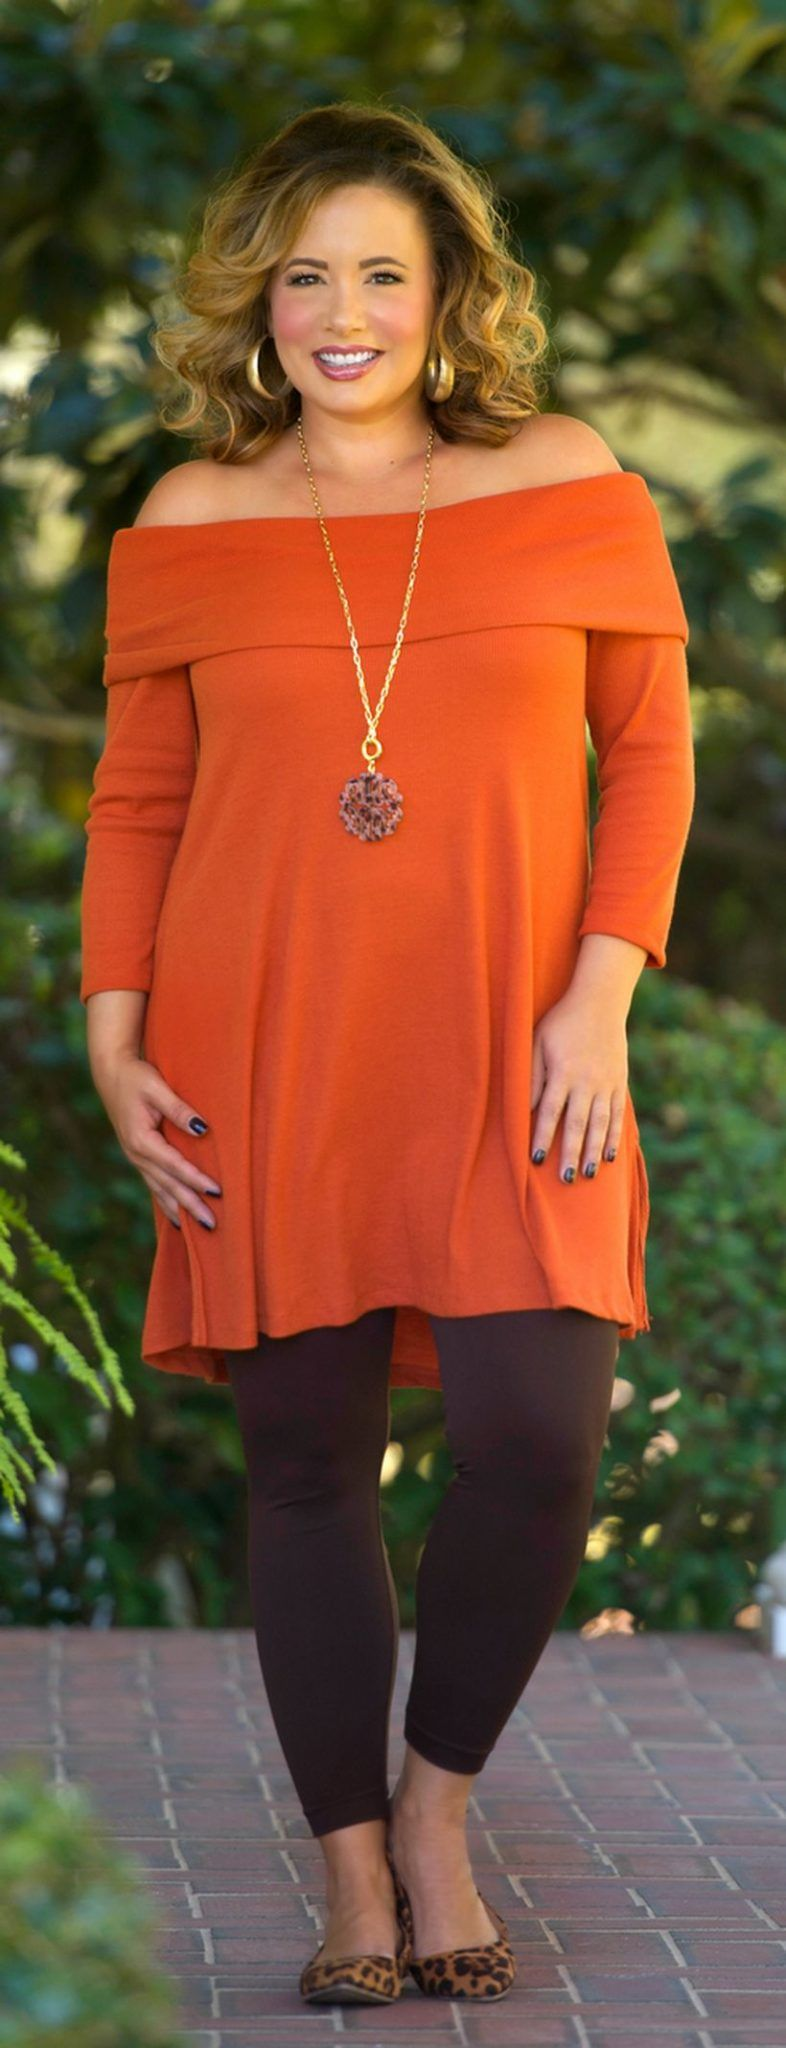 35 plus size fall outfits for moms that you can copy 7 - 35-plus-size-fall-outfits-for-moms-that-you-can-copy-7